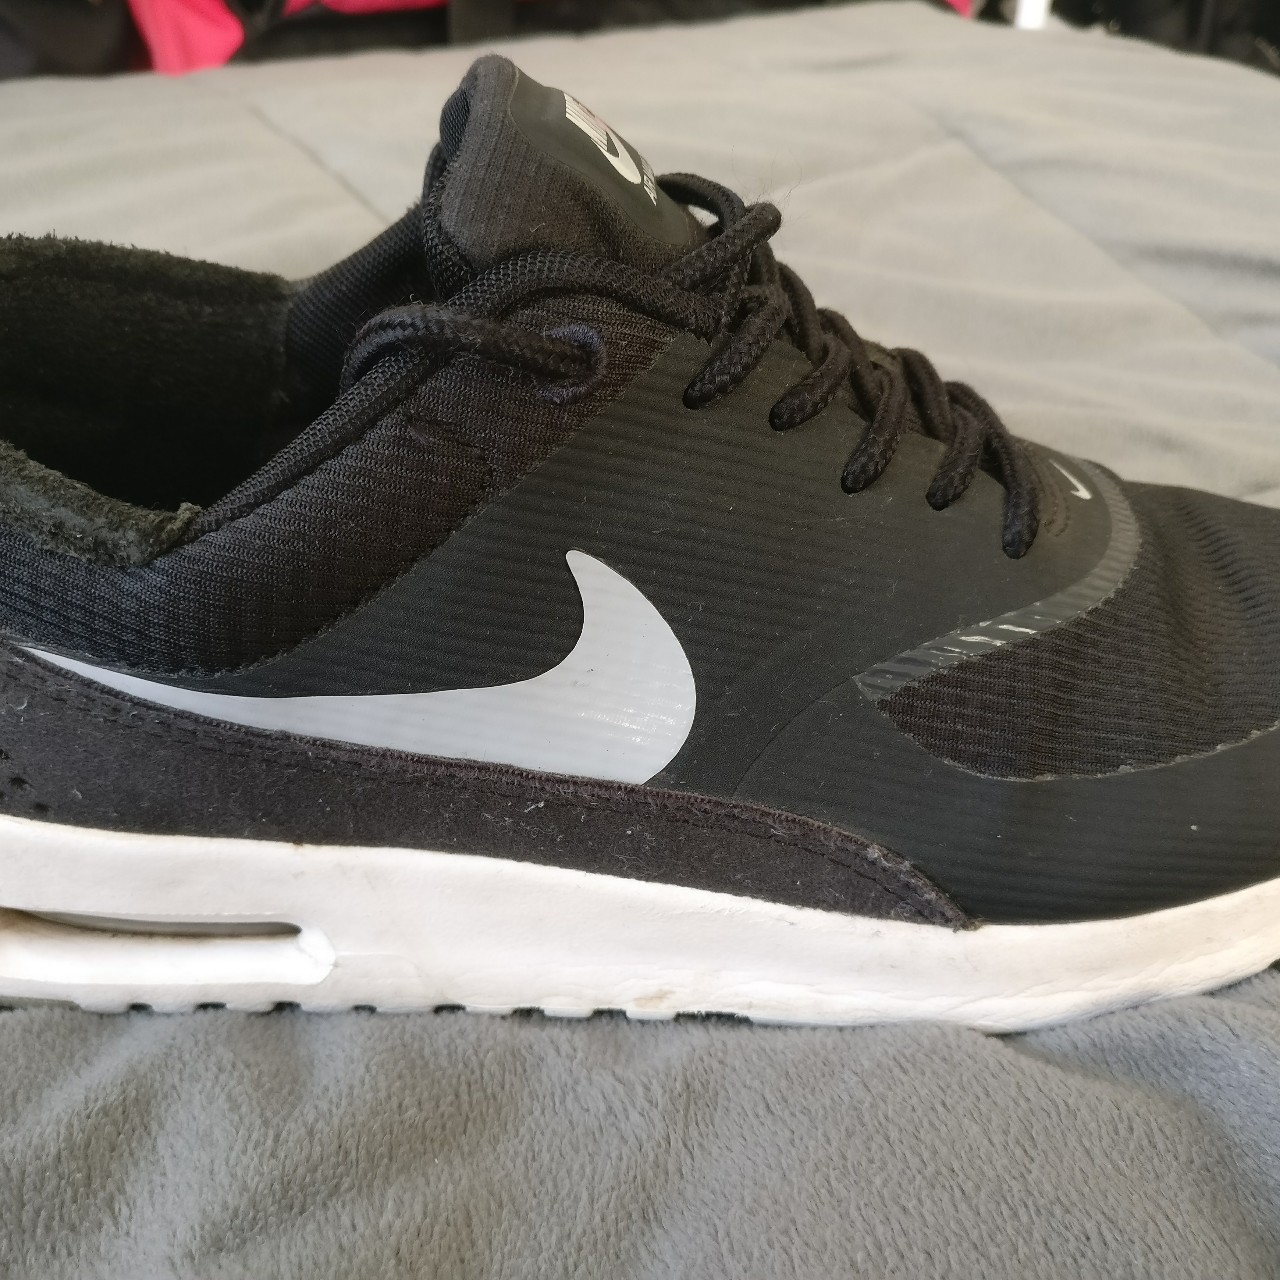 Nike Air Max Thea Women's. Black and White. Second